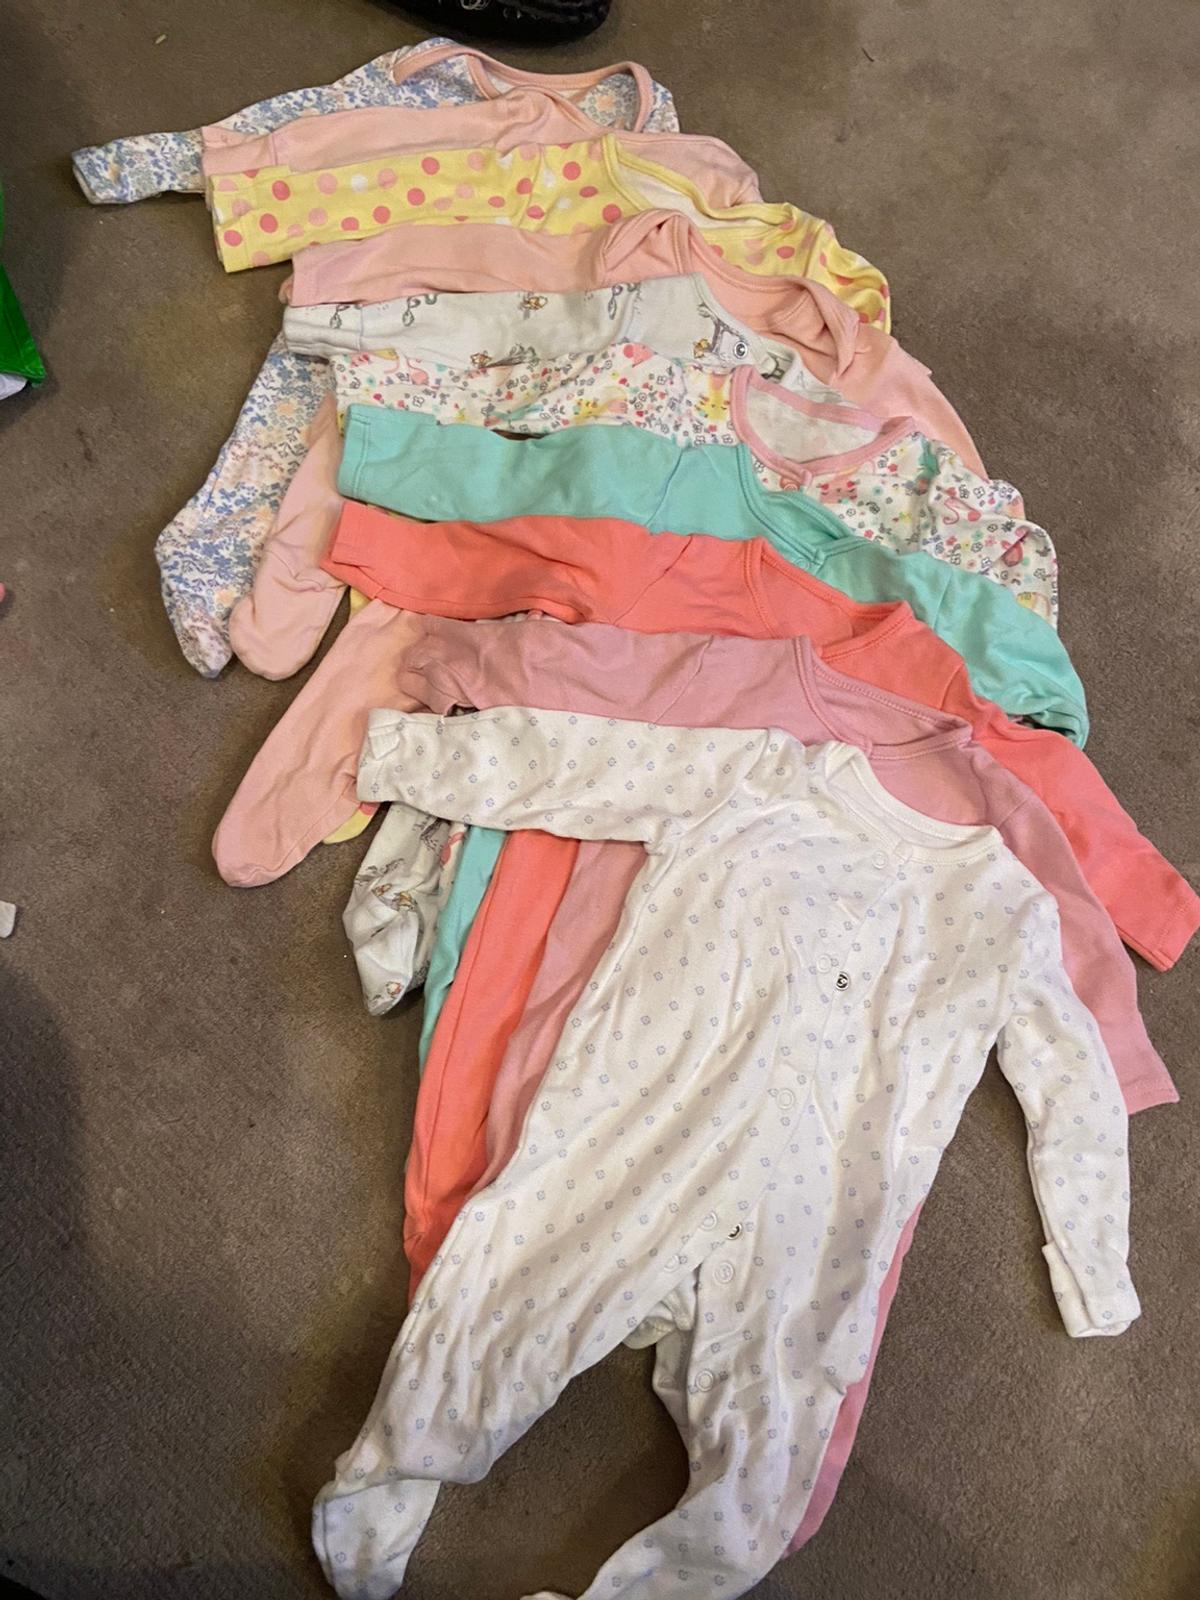 10 x new born baby grows, barely used.